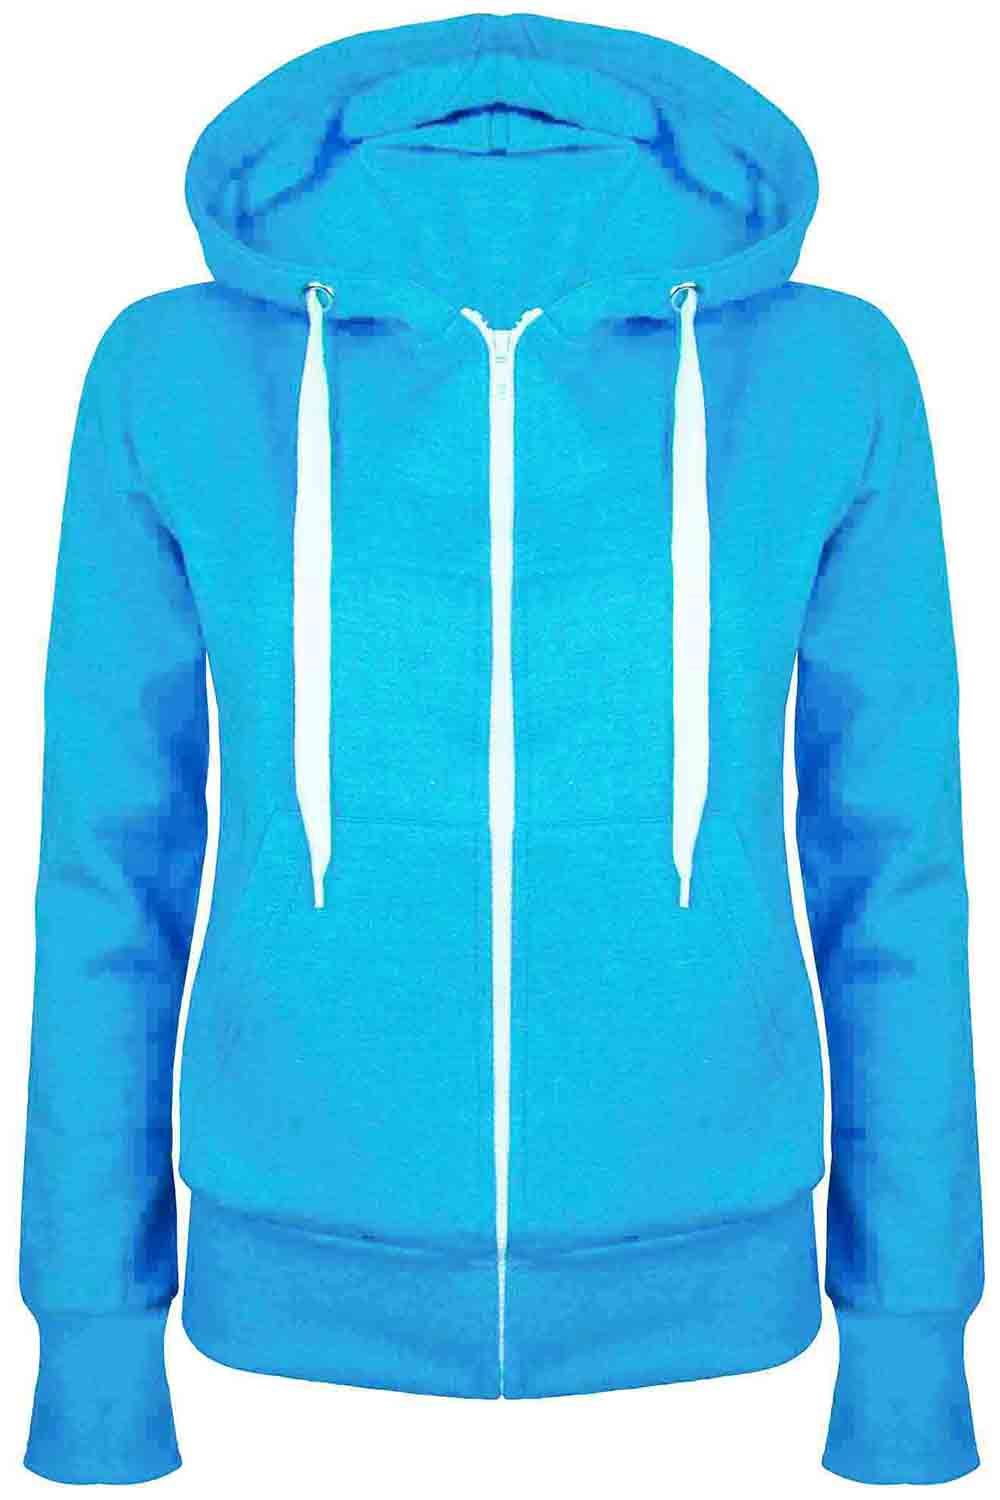 At kejal-2191.tk we offer a wide choice in our women zip hoodie collection which includes all the best brands like AWD, Stars & Stripes, Fruit of the loom, Bella and many more.